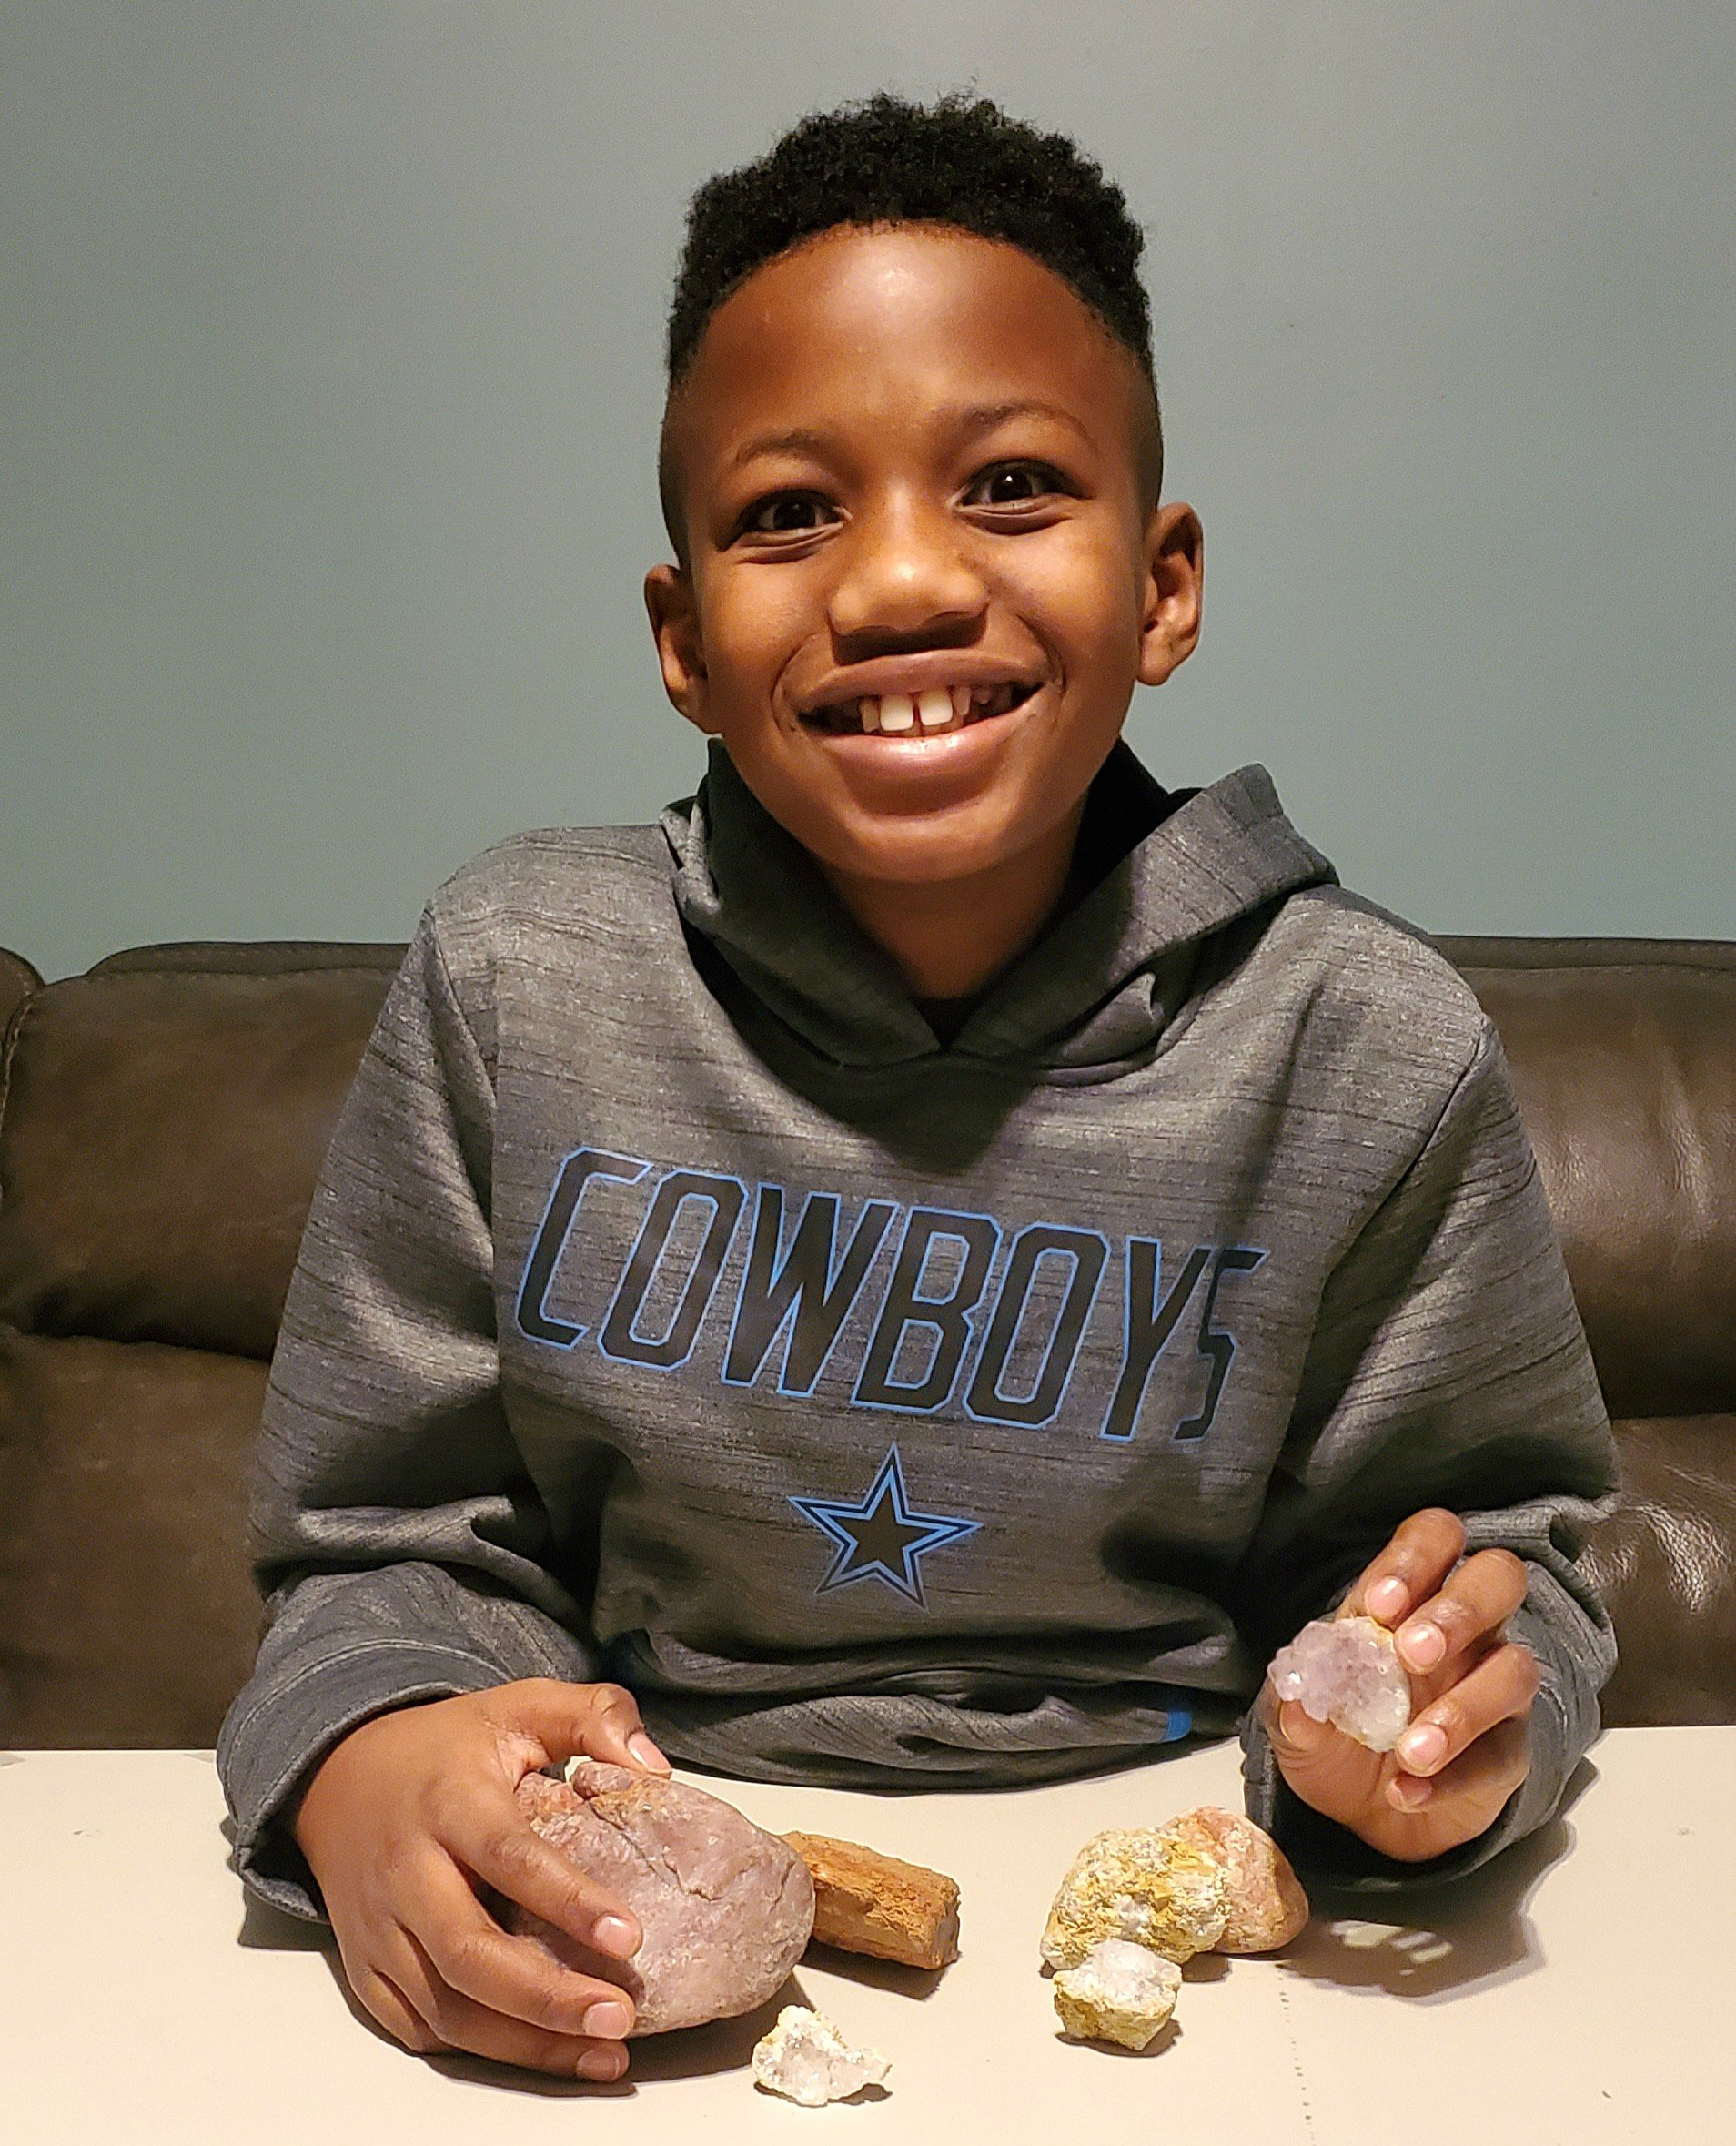 Fifth-grader Jahari Barron hopes to become a geologist.